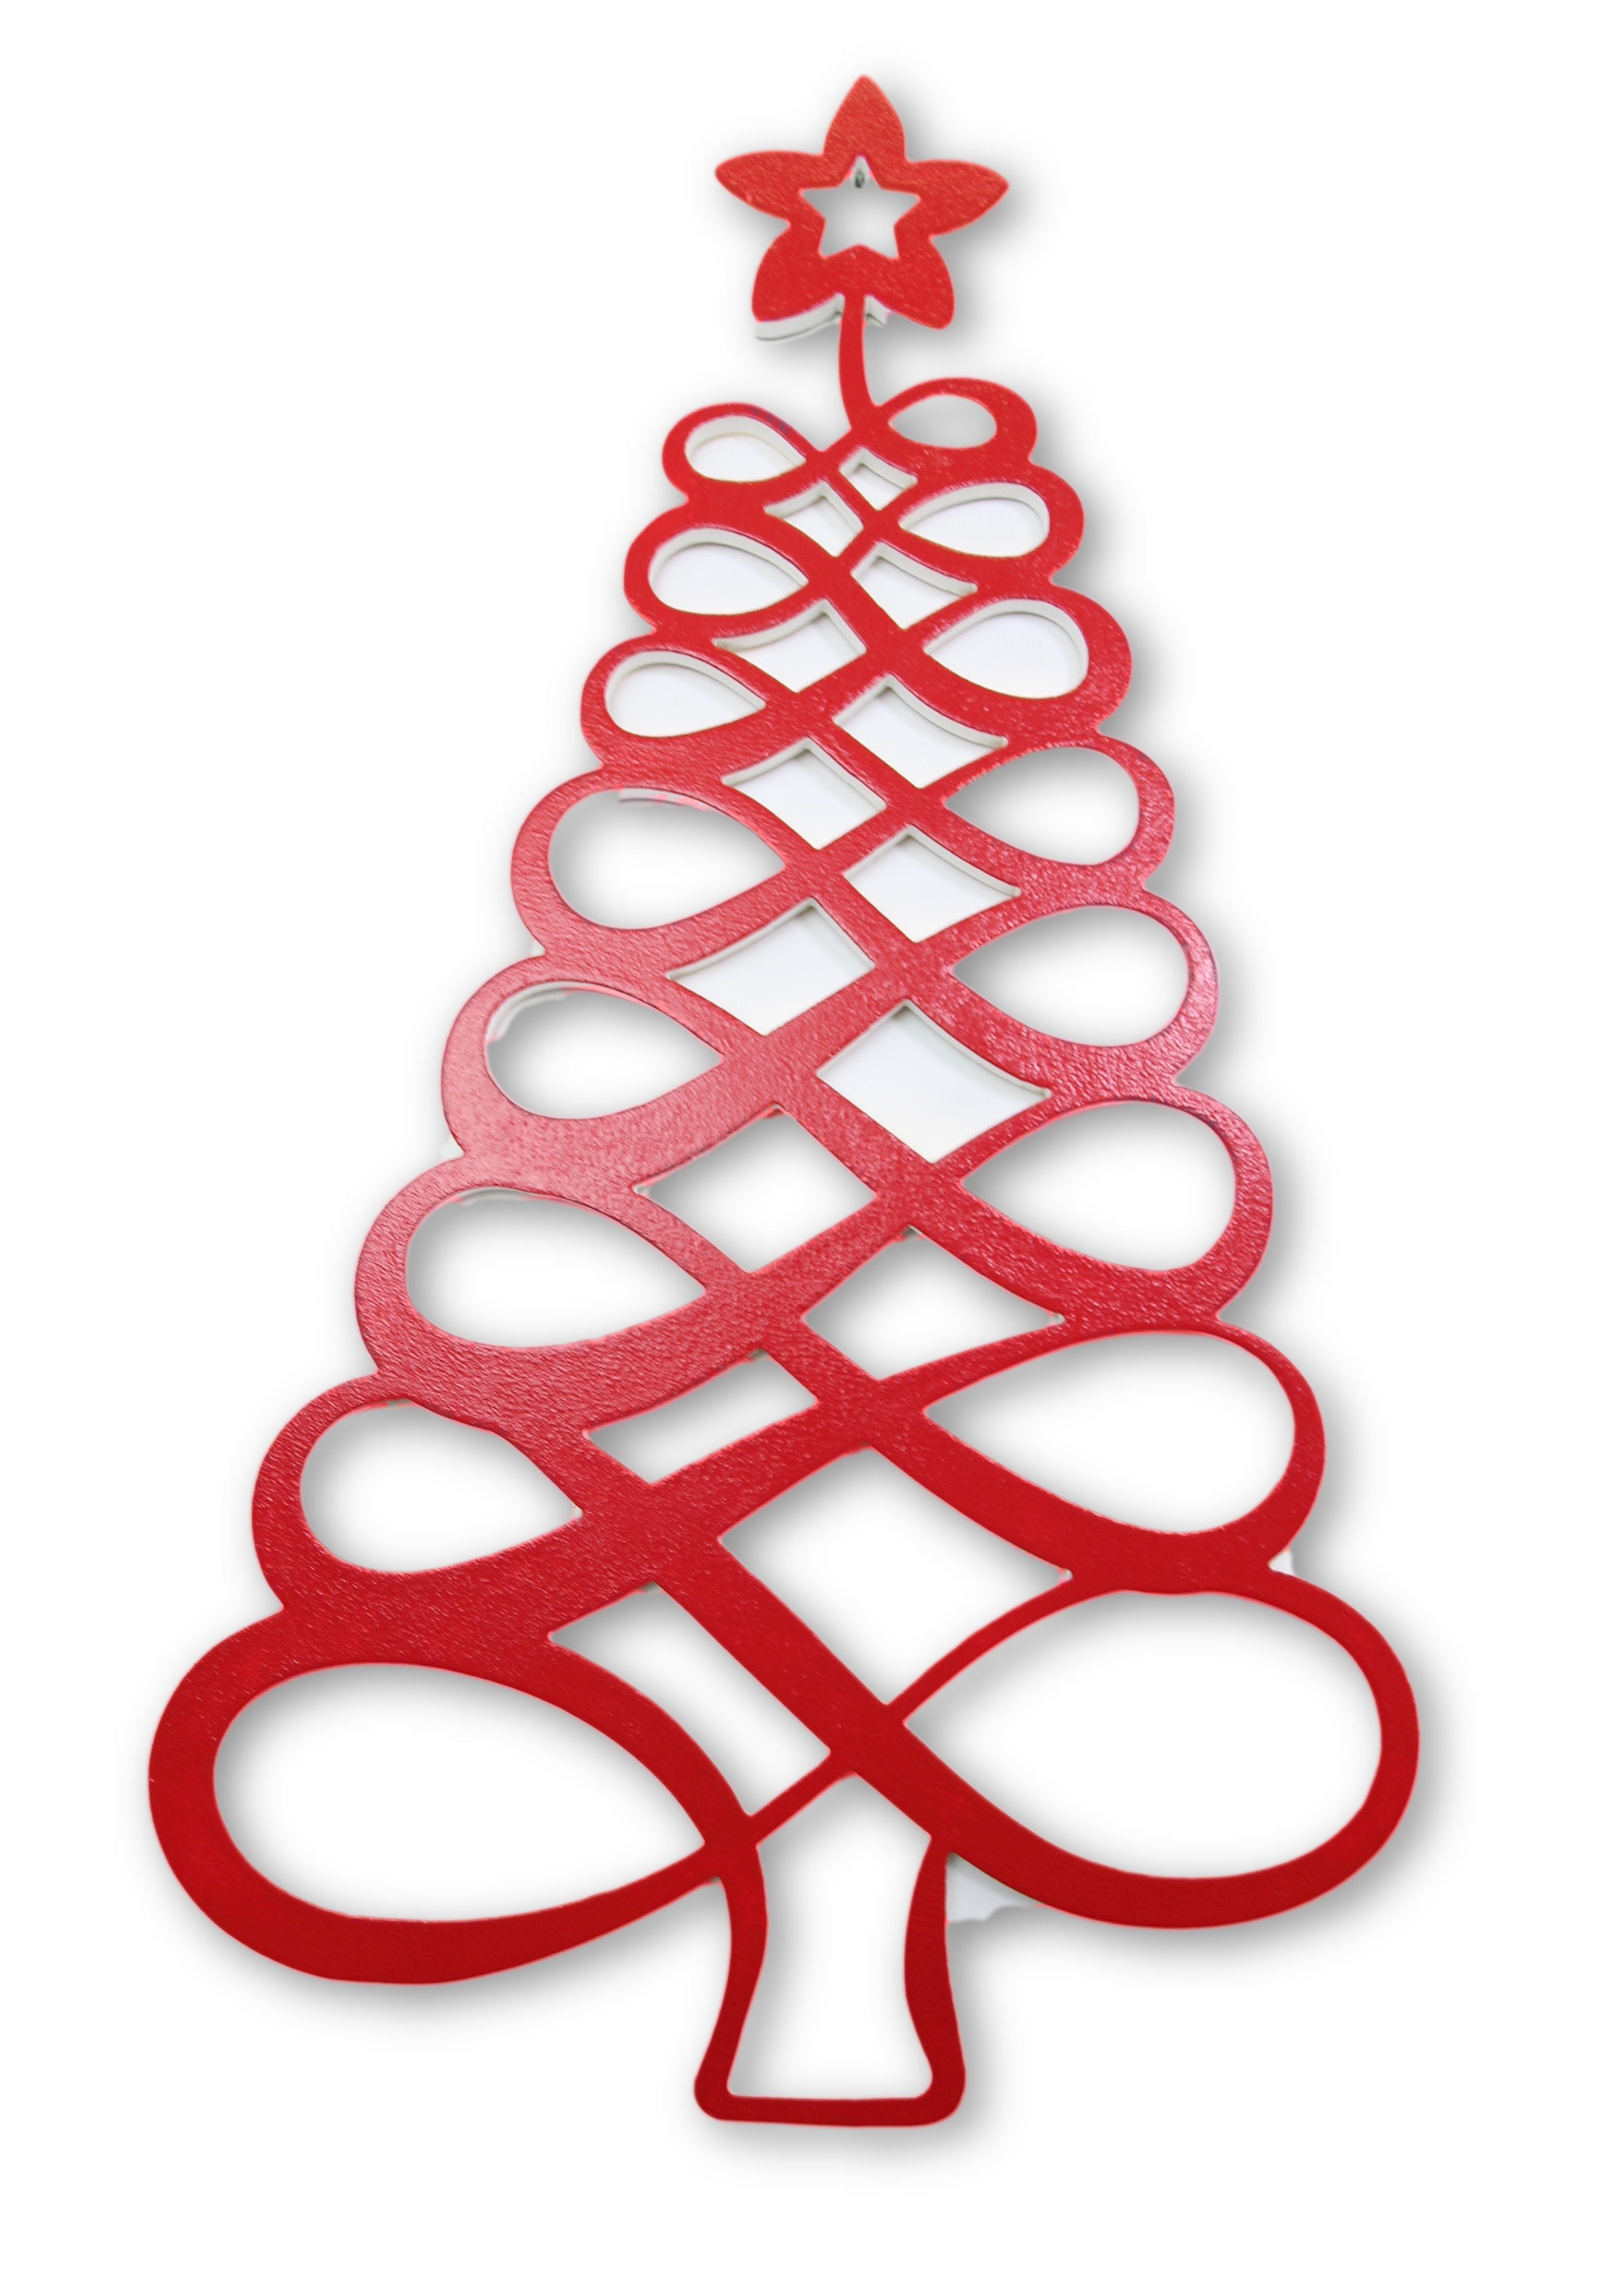 Chrstmas tree base clipart banner transparent library Seasonal Door Hangers ~ Red Swirling Oval Christmas Tree banner transparent library